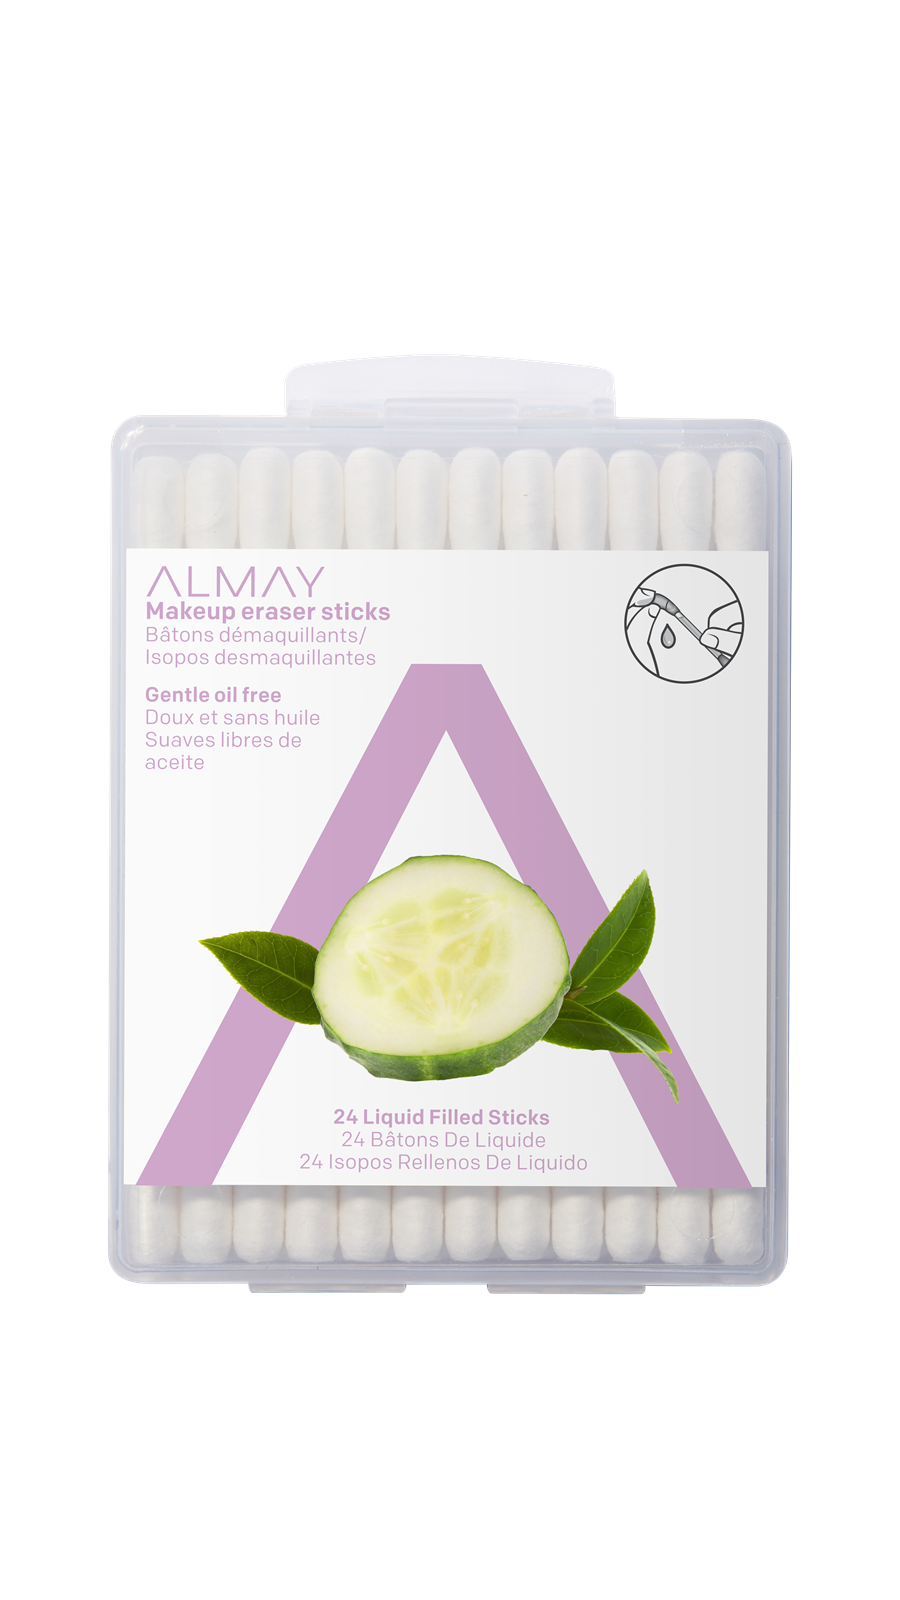 Almay Makeup Eraser Sticks - Makeup Remover